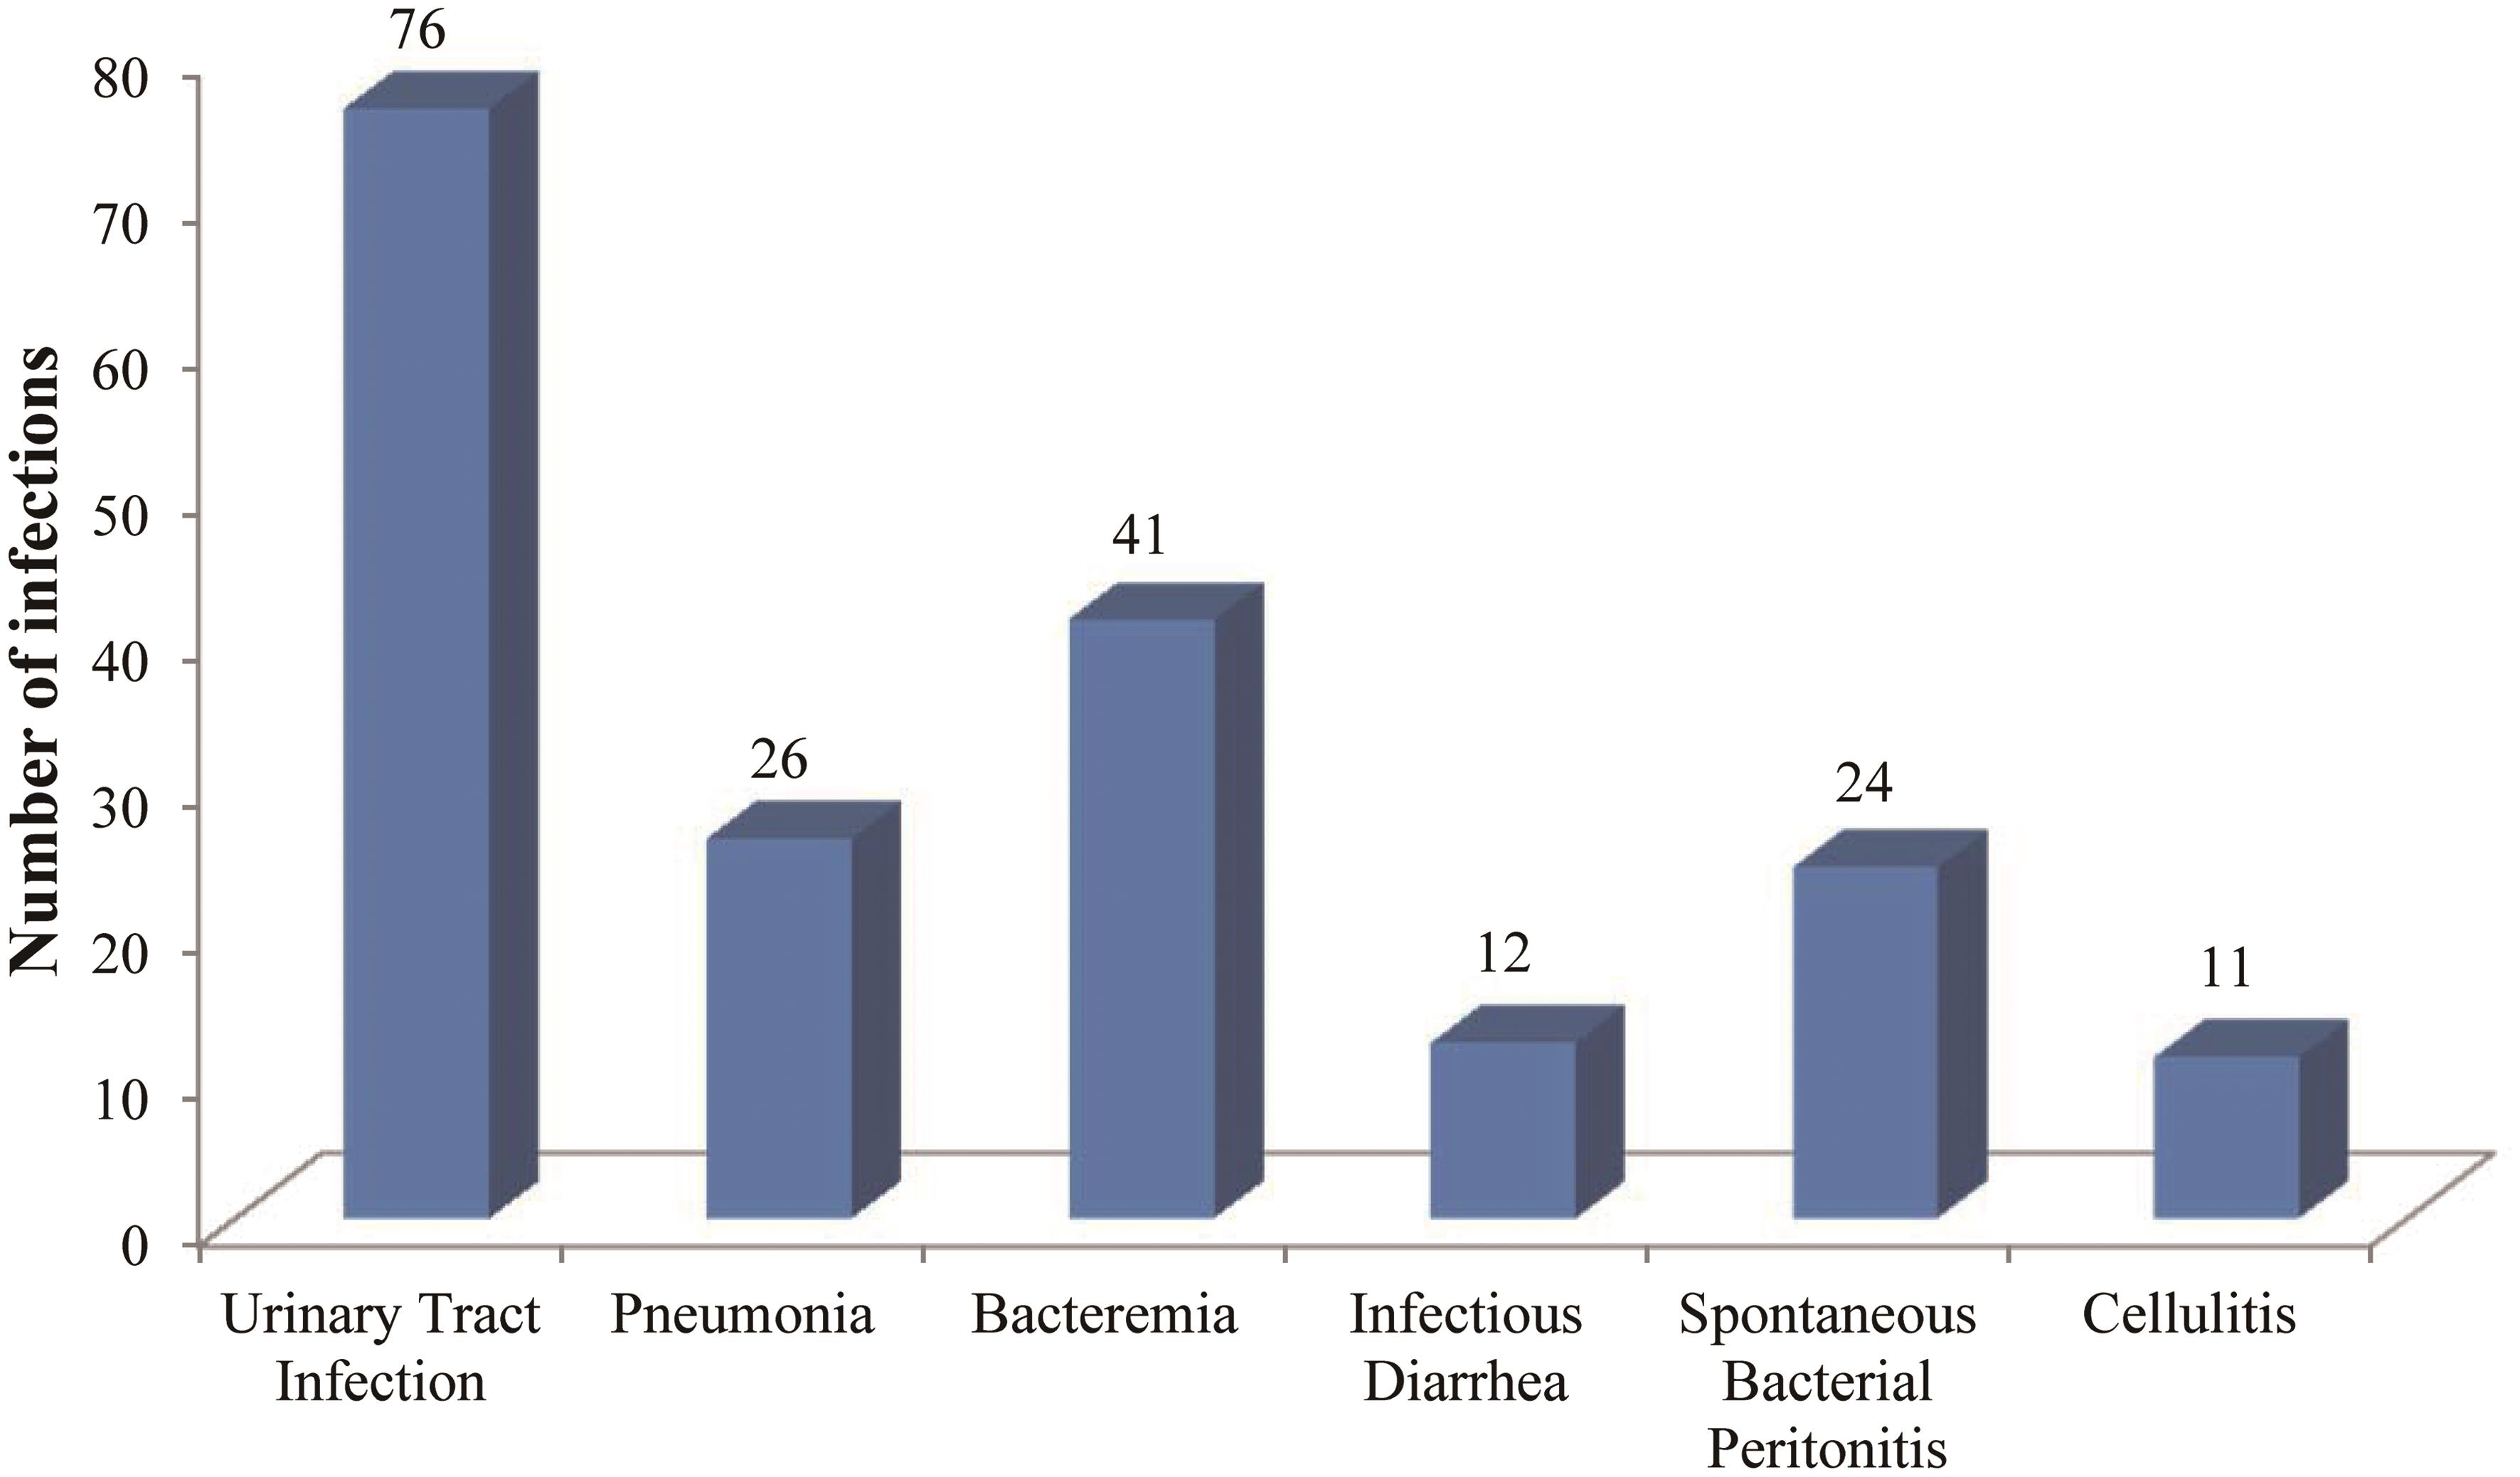 Top six types of infections in cirrhotic patients.